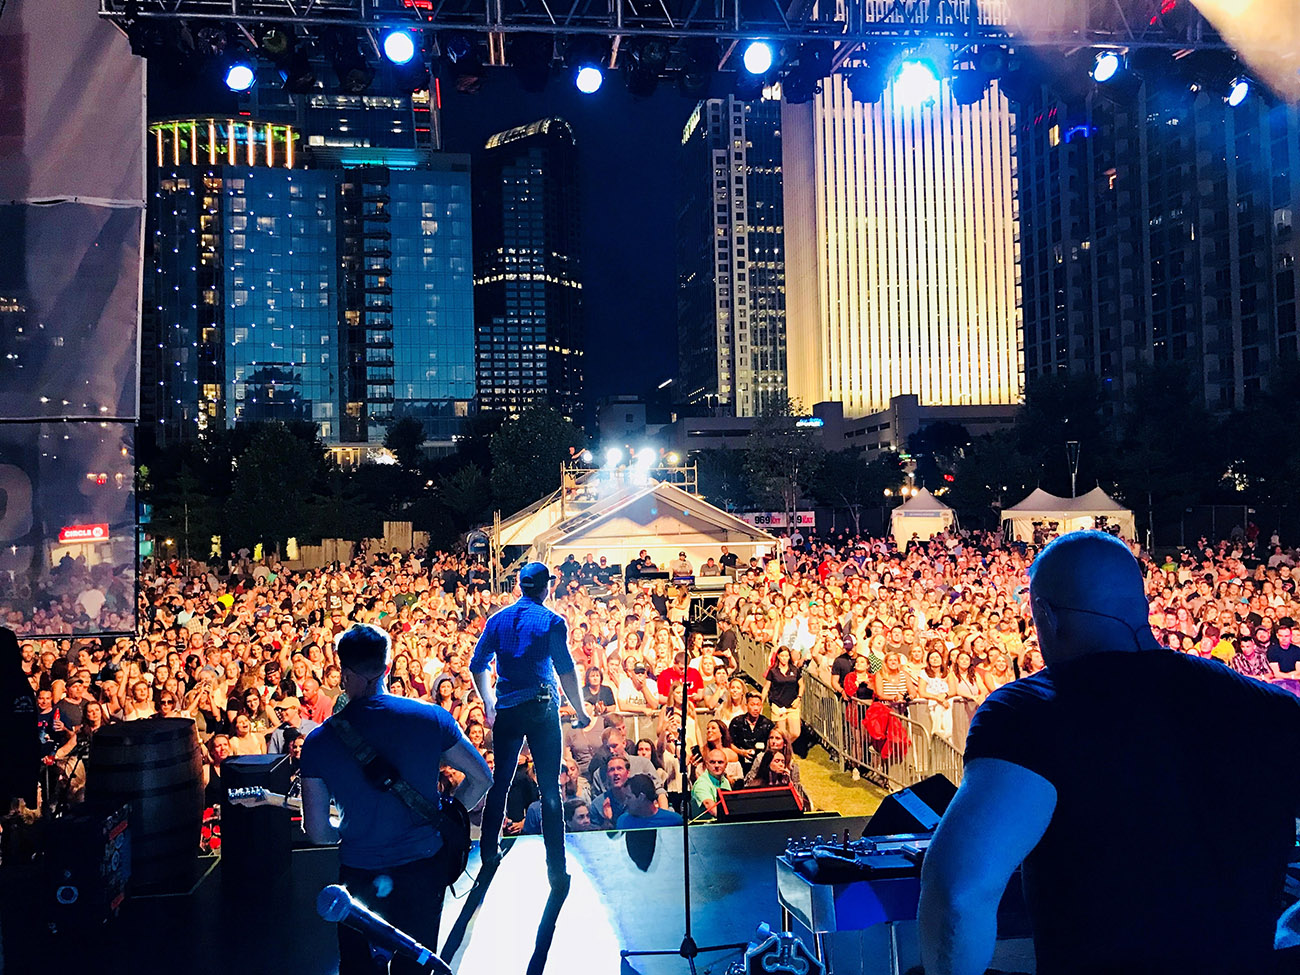 300,000 people expected to attend Circle K Speed Street with three days of concerts, NASCAR autographs and free family activities